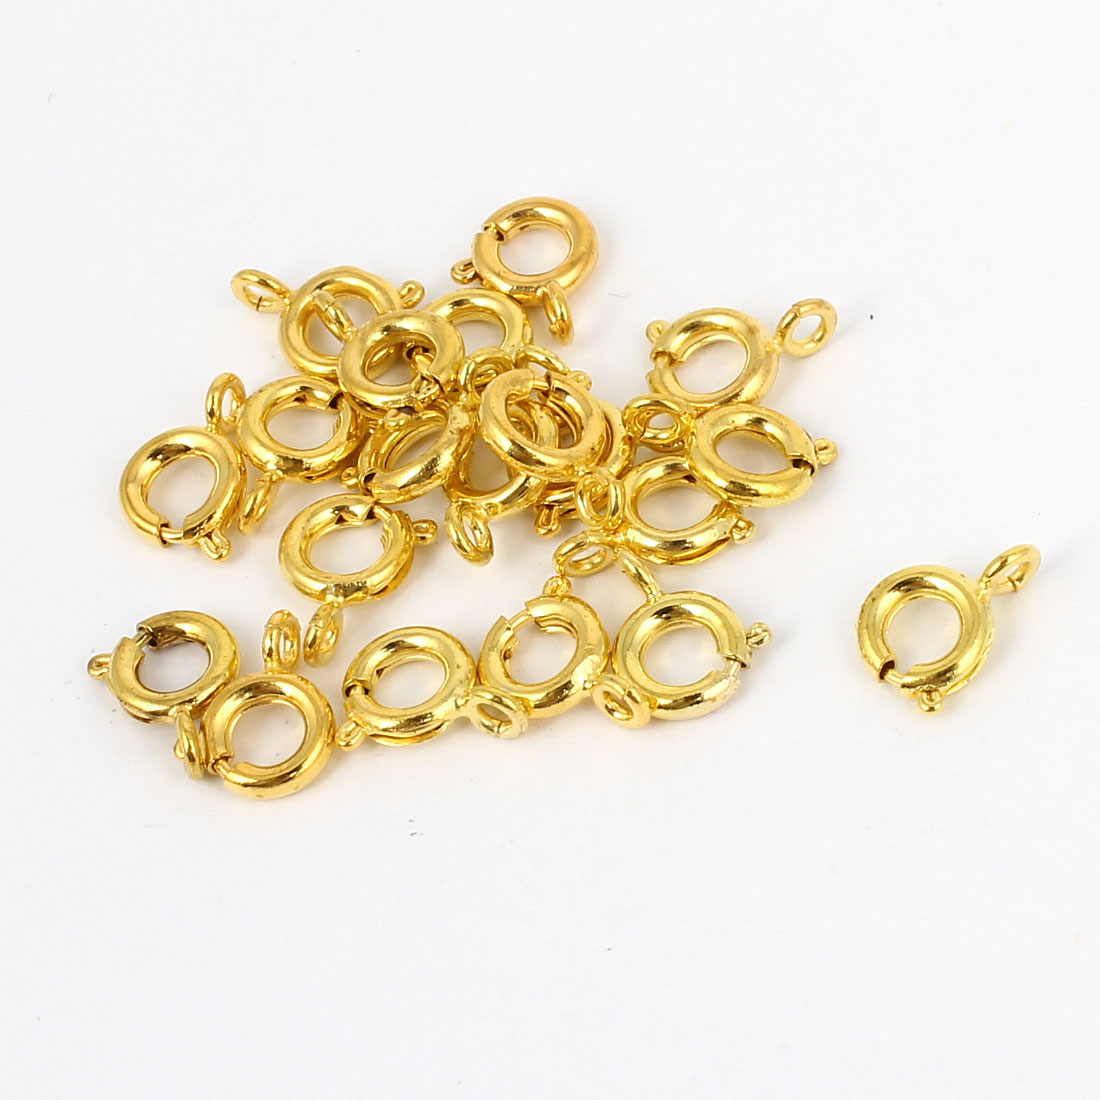 Necklace Bracelet Connector Gold Tone Spring Ring Clasps 6mm 20 Pcs